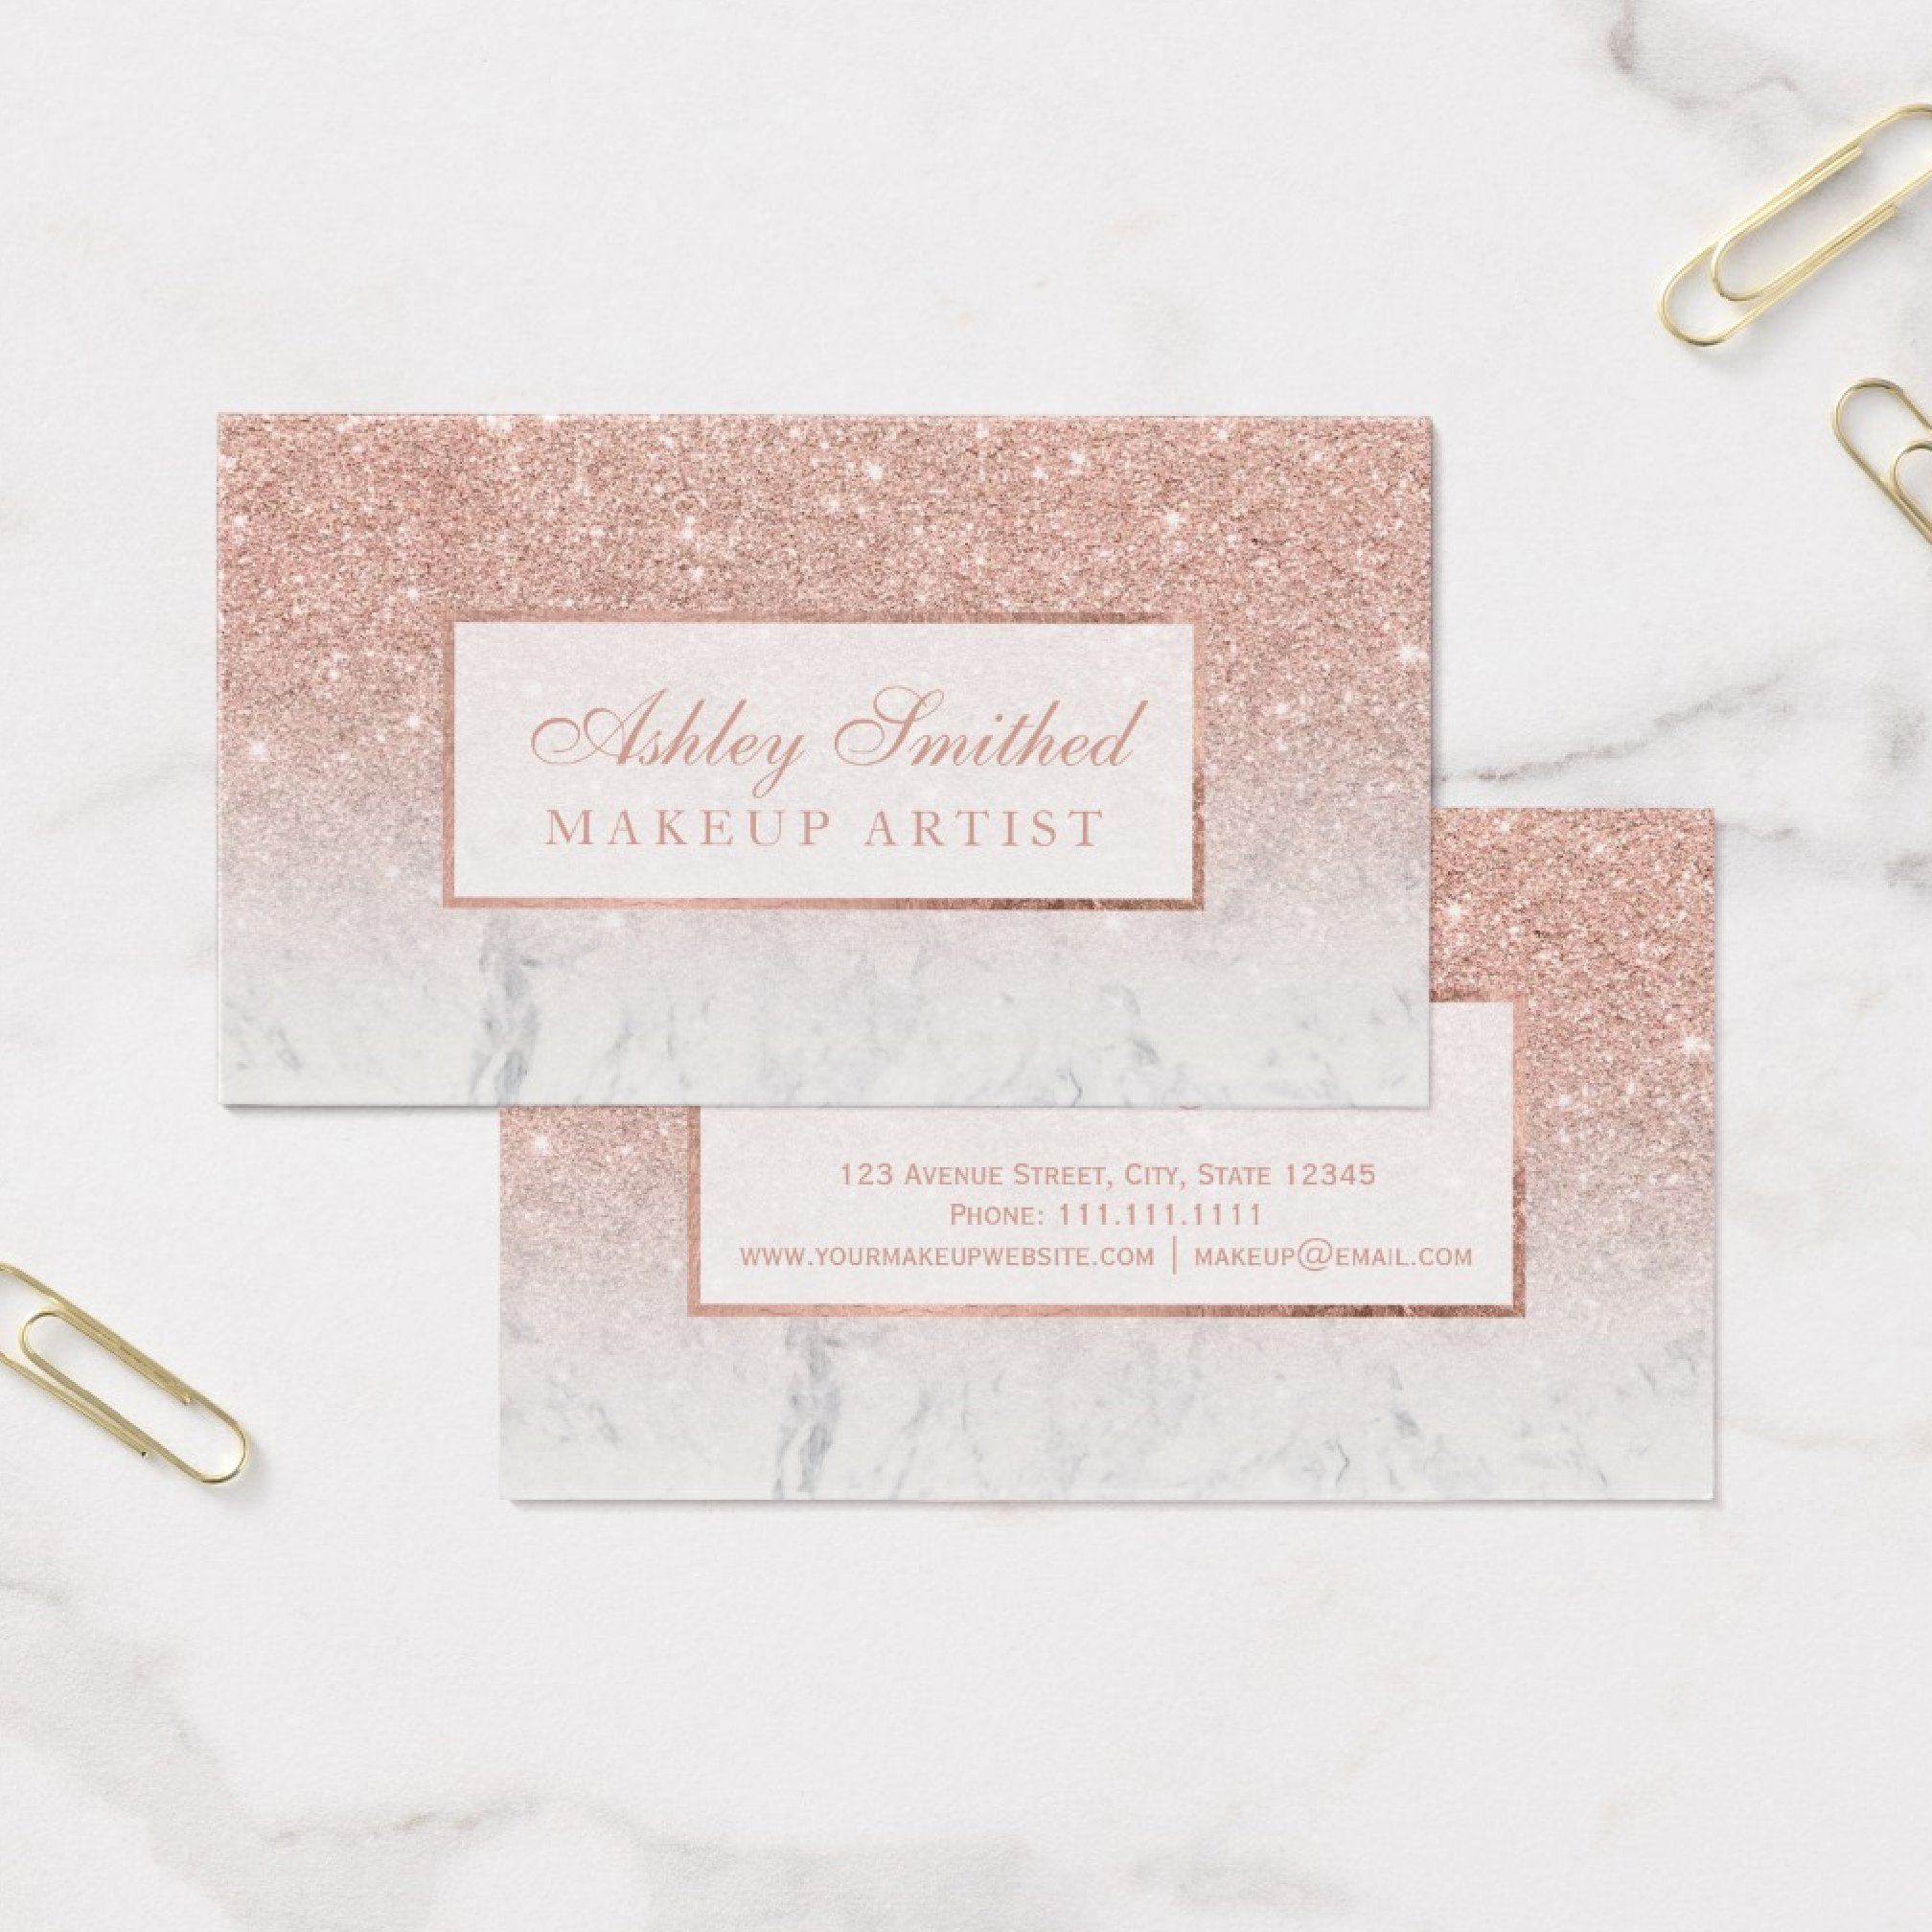 zazzle preview physical business card rose gold white marble